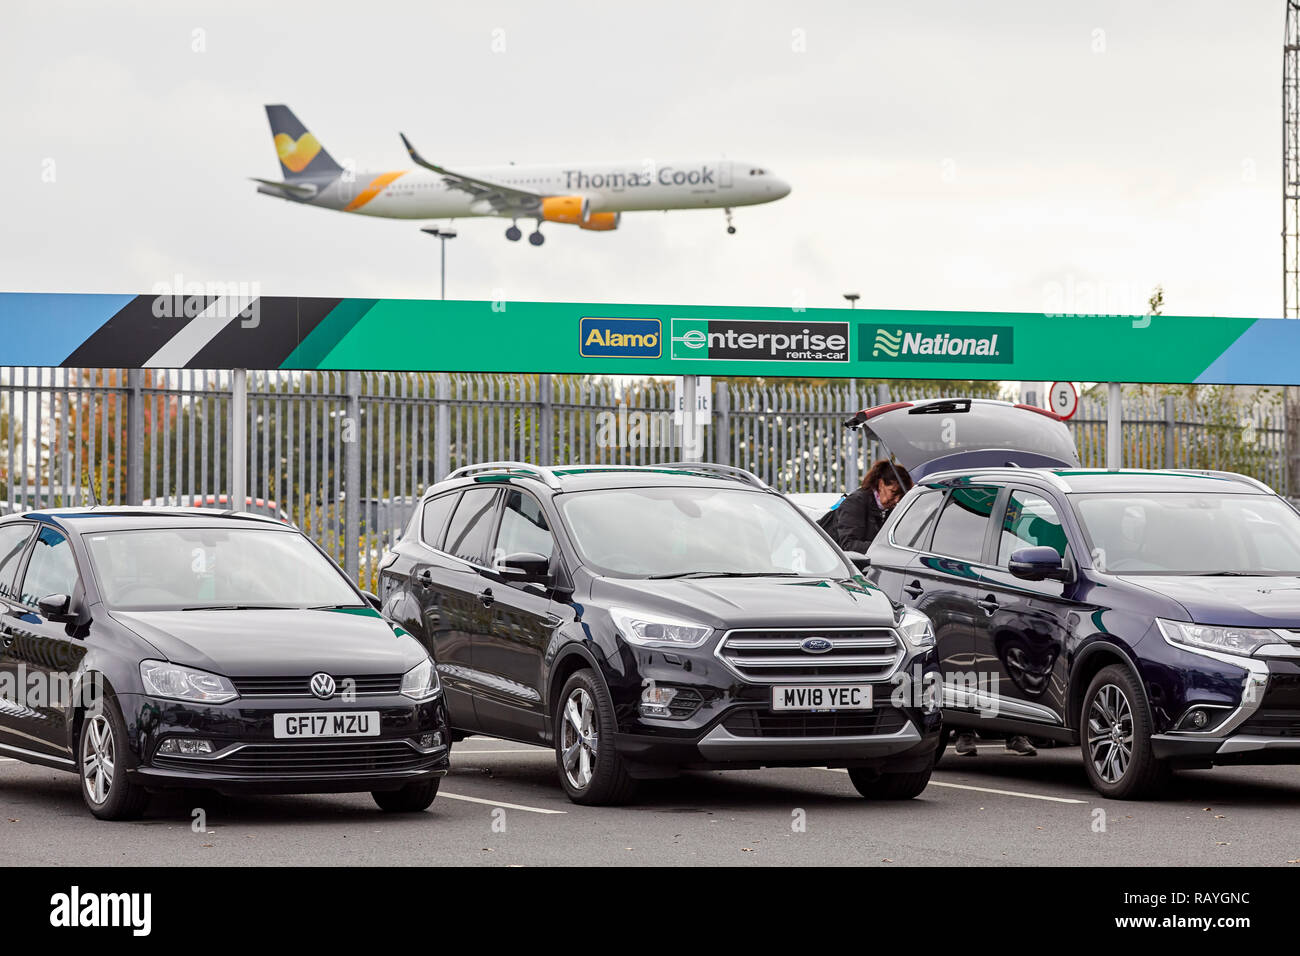 car hire company Alamo, Enterprise, National car rental village at Manchester Airport Stock Photo